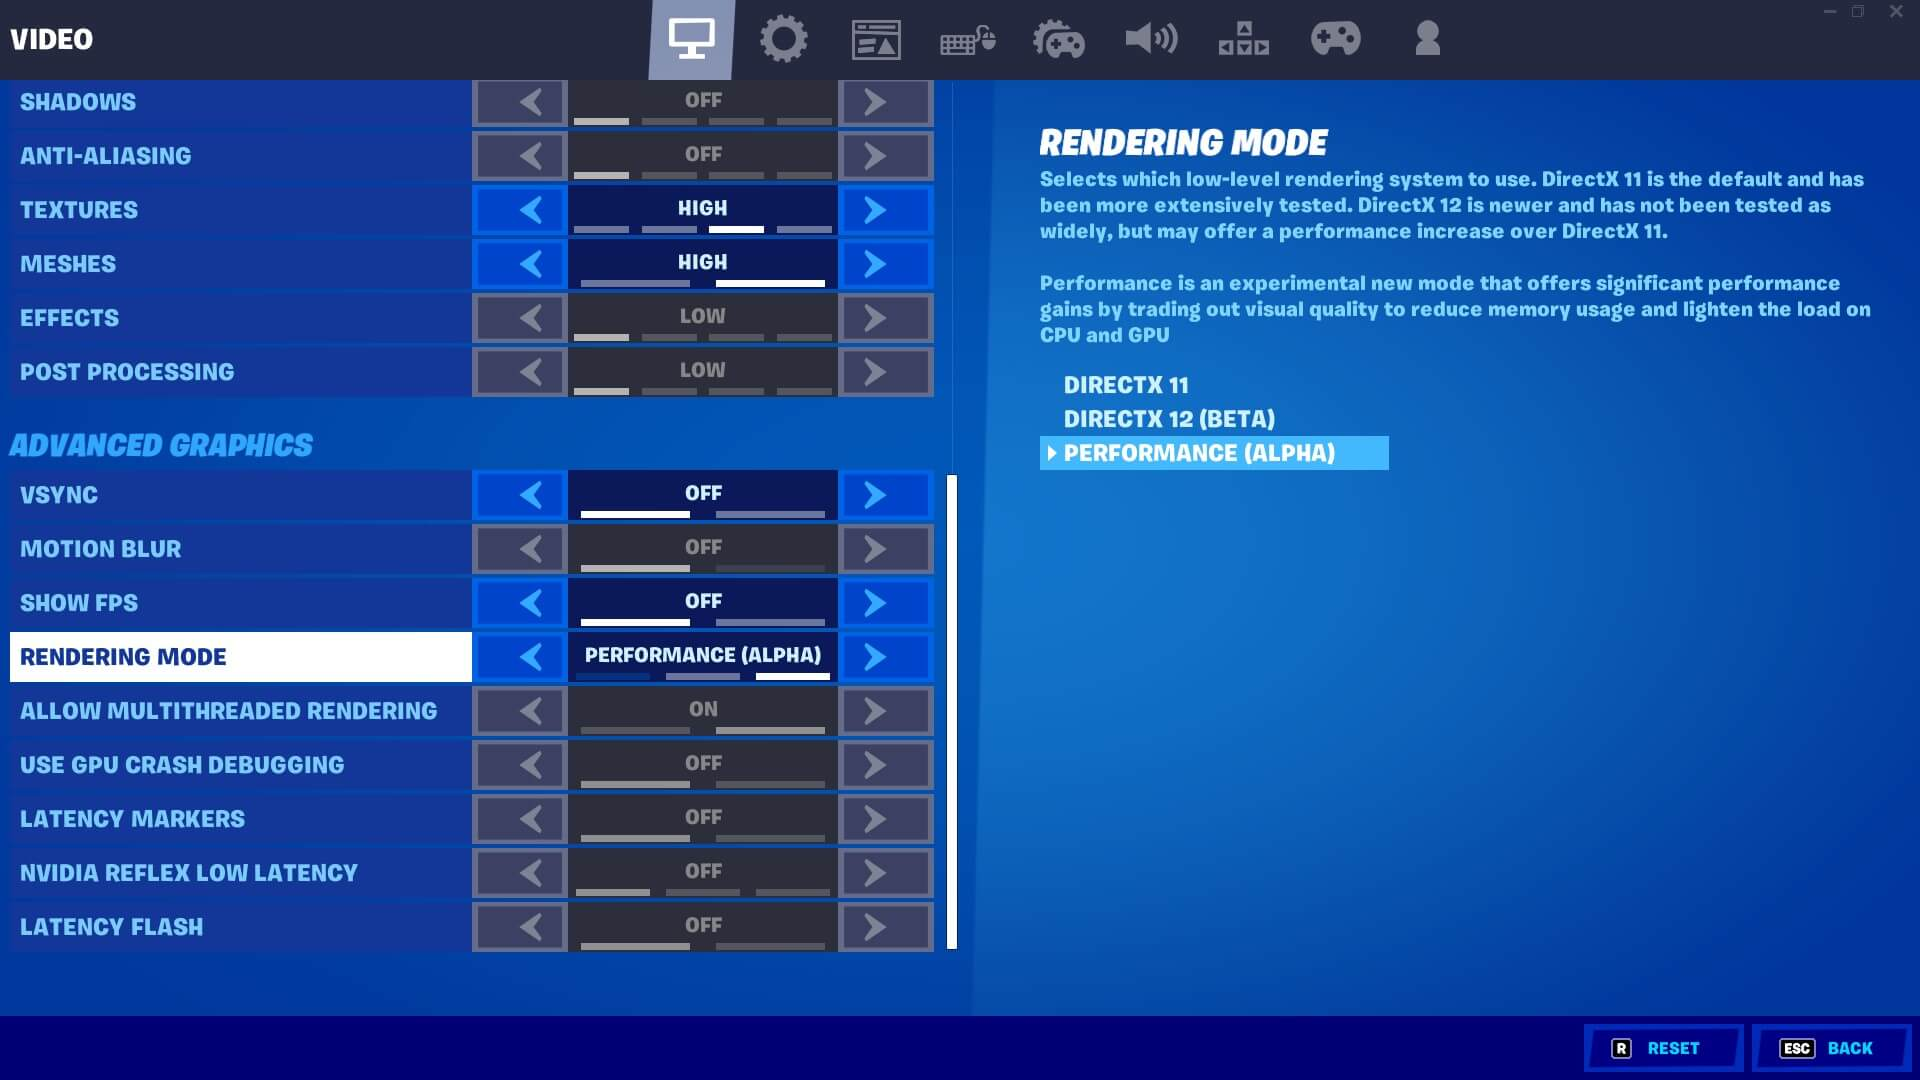 Fortnite Performance Mode Under Advanced Graphics